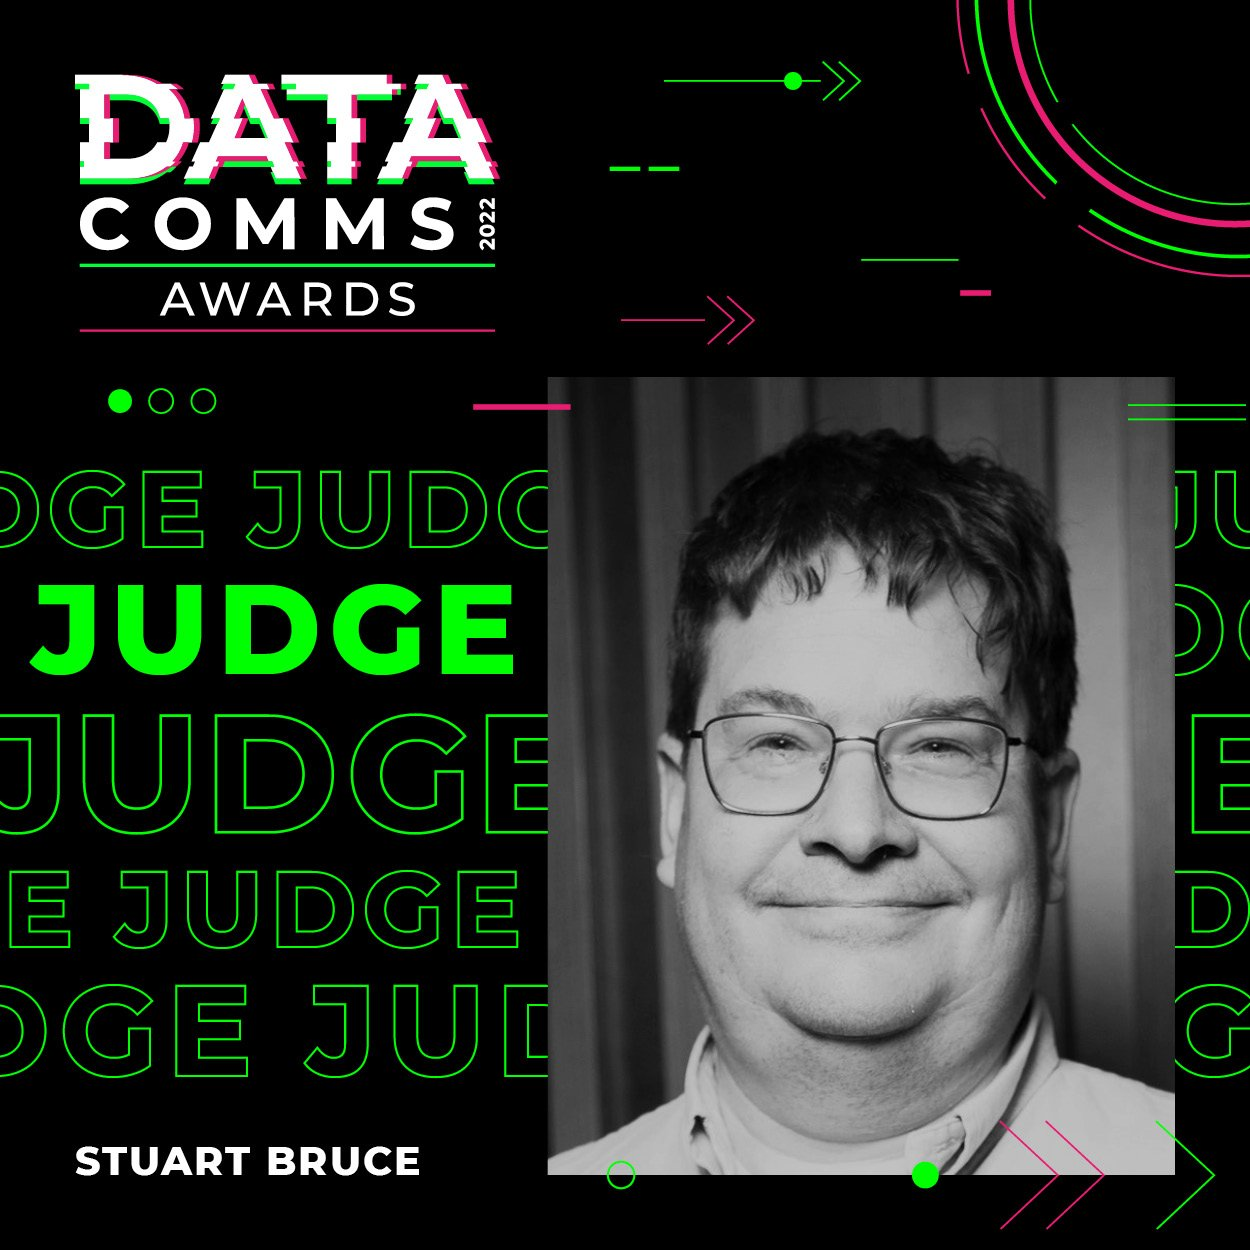 DataComms Awards celebrate the excellent use of data in corporate communications